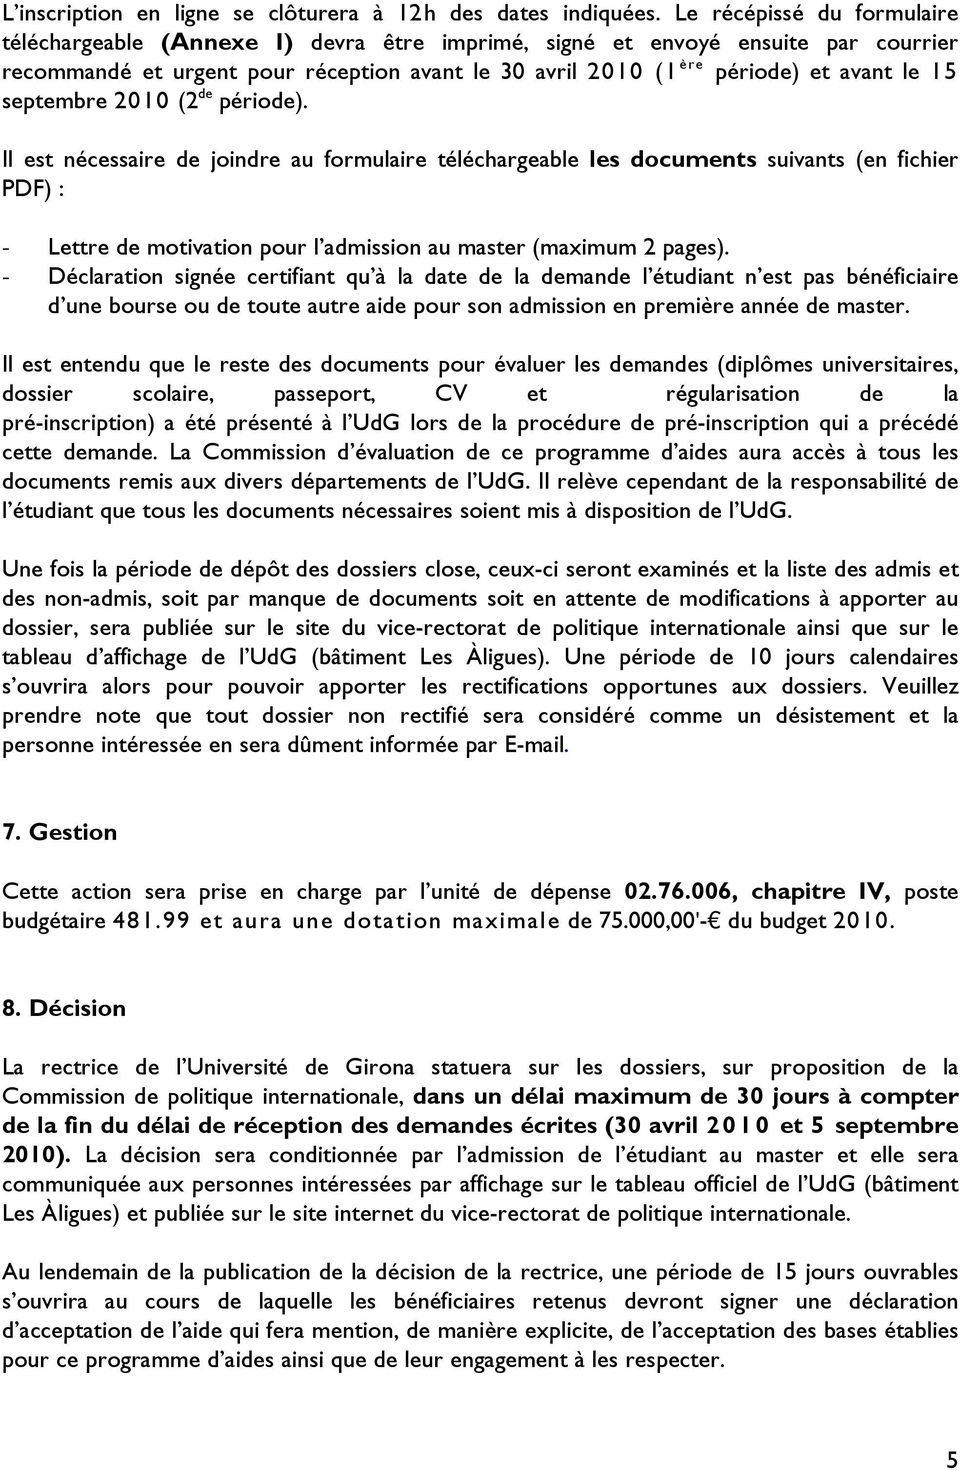 septembre 2010 (2 de période). Il est nécessaire de joindre au formulaire téléchargeable les documents suivants (en fichier PDF) : - Lettre de motivation pour l admission au master (maximum 2 pages).